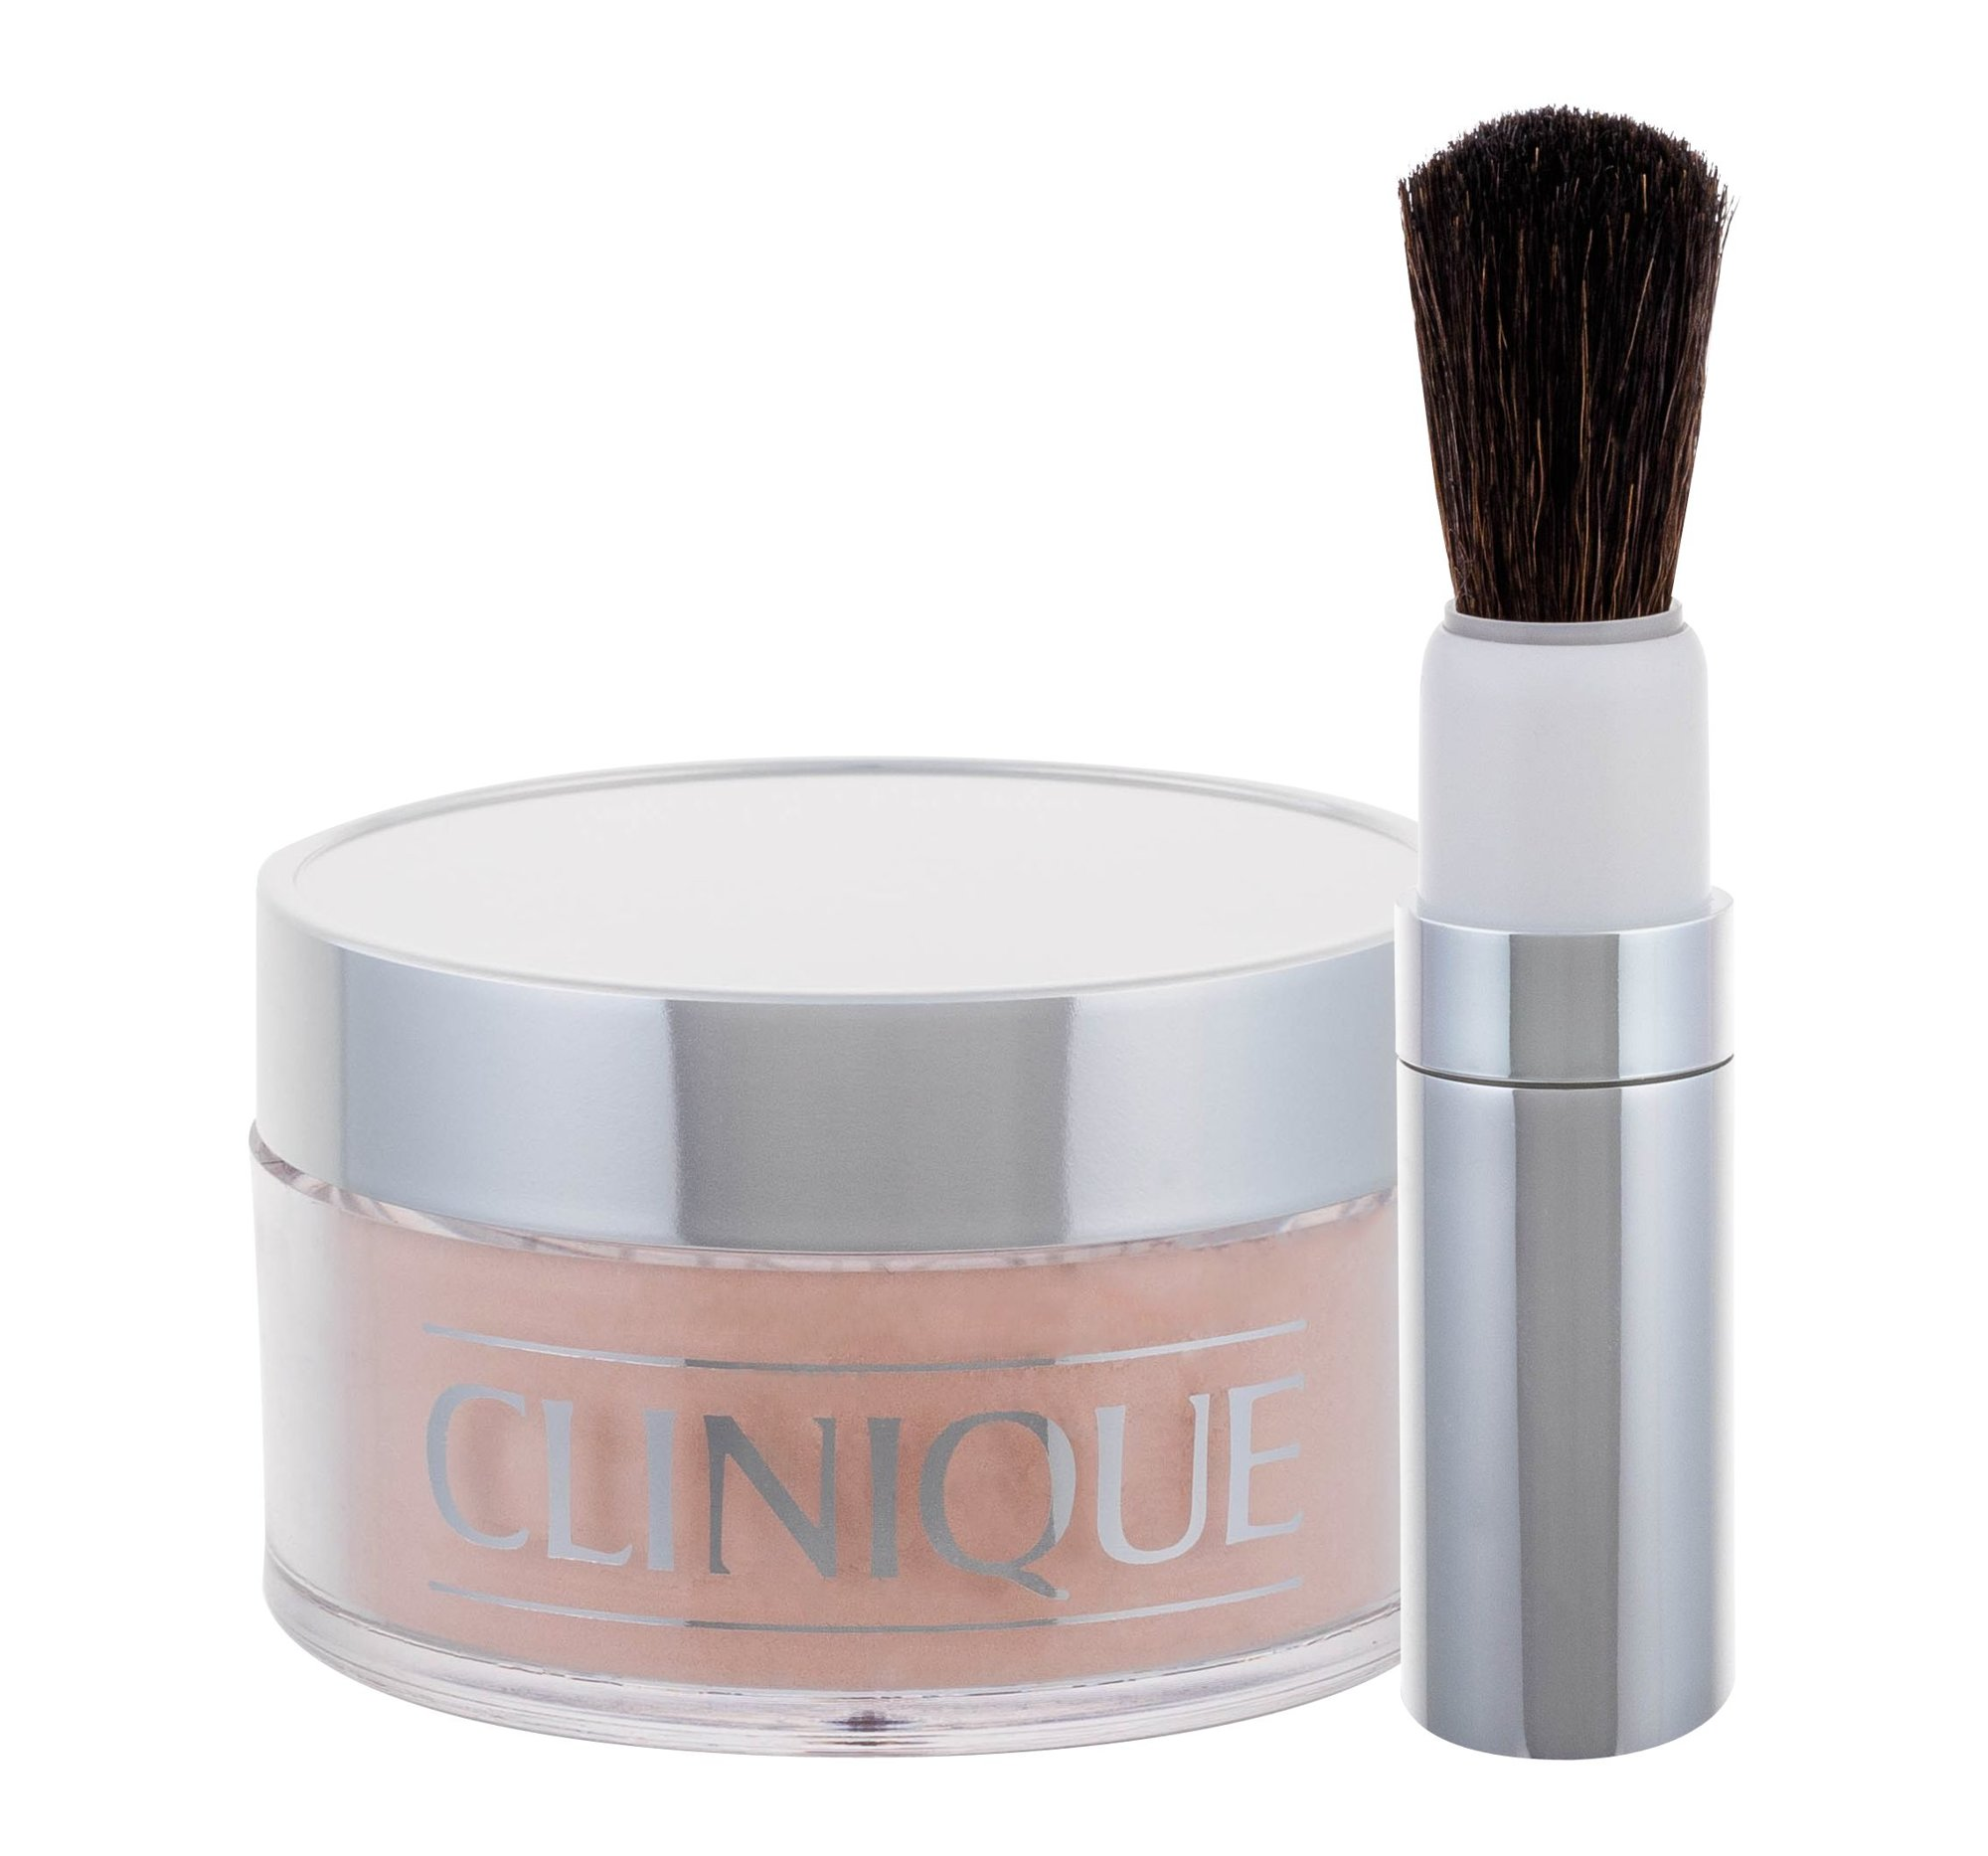 Clinique Blended Cosmetic 35ml 03 Transparency Face Powder And Brush